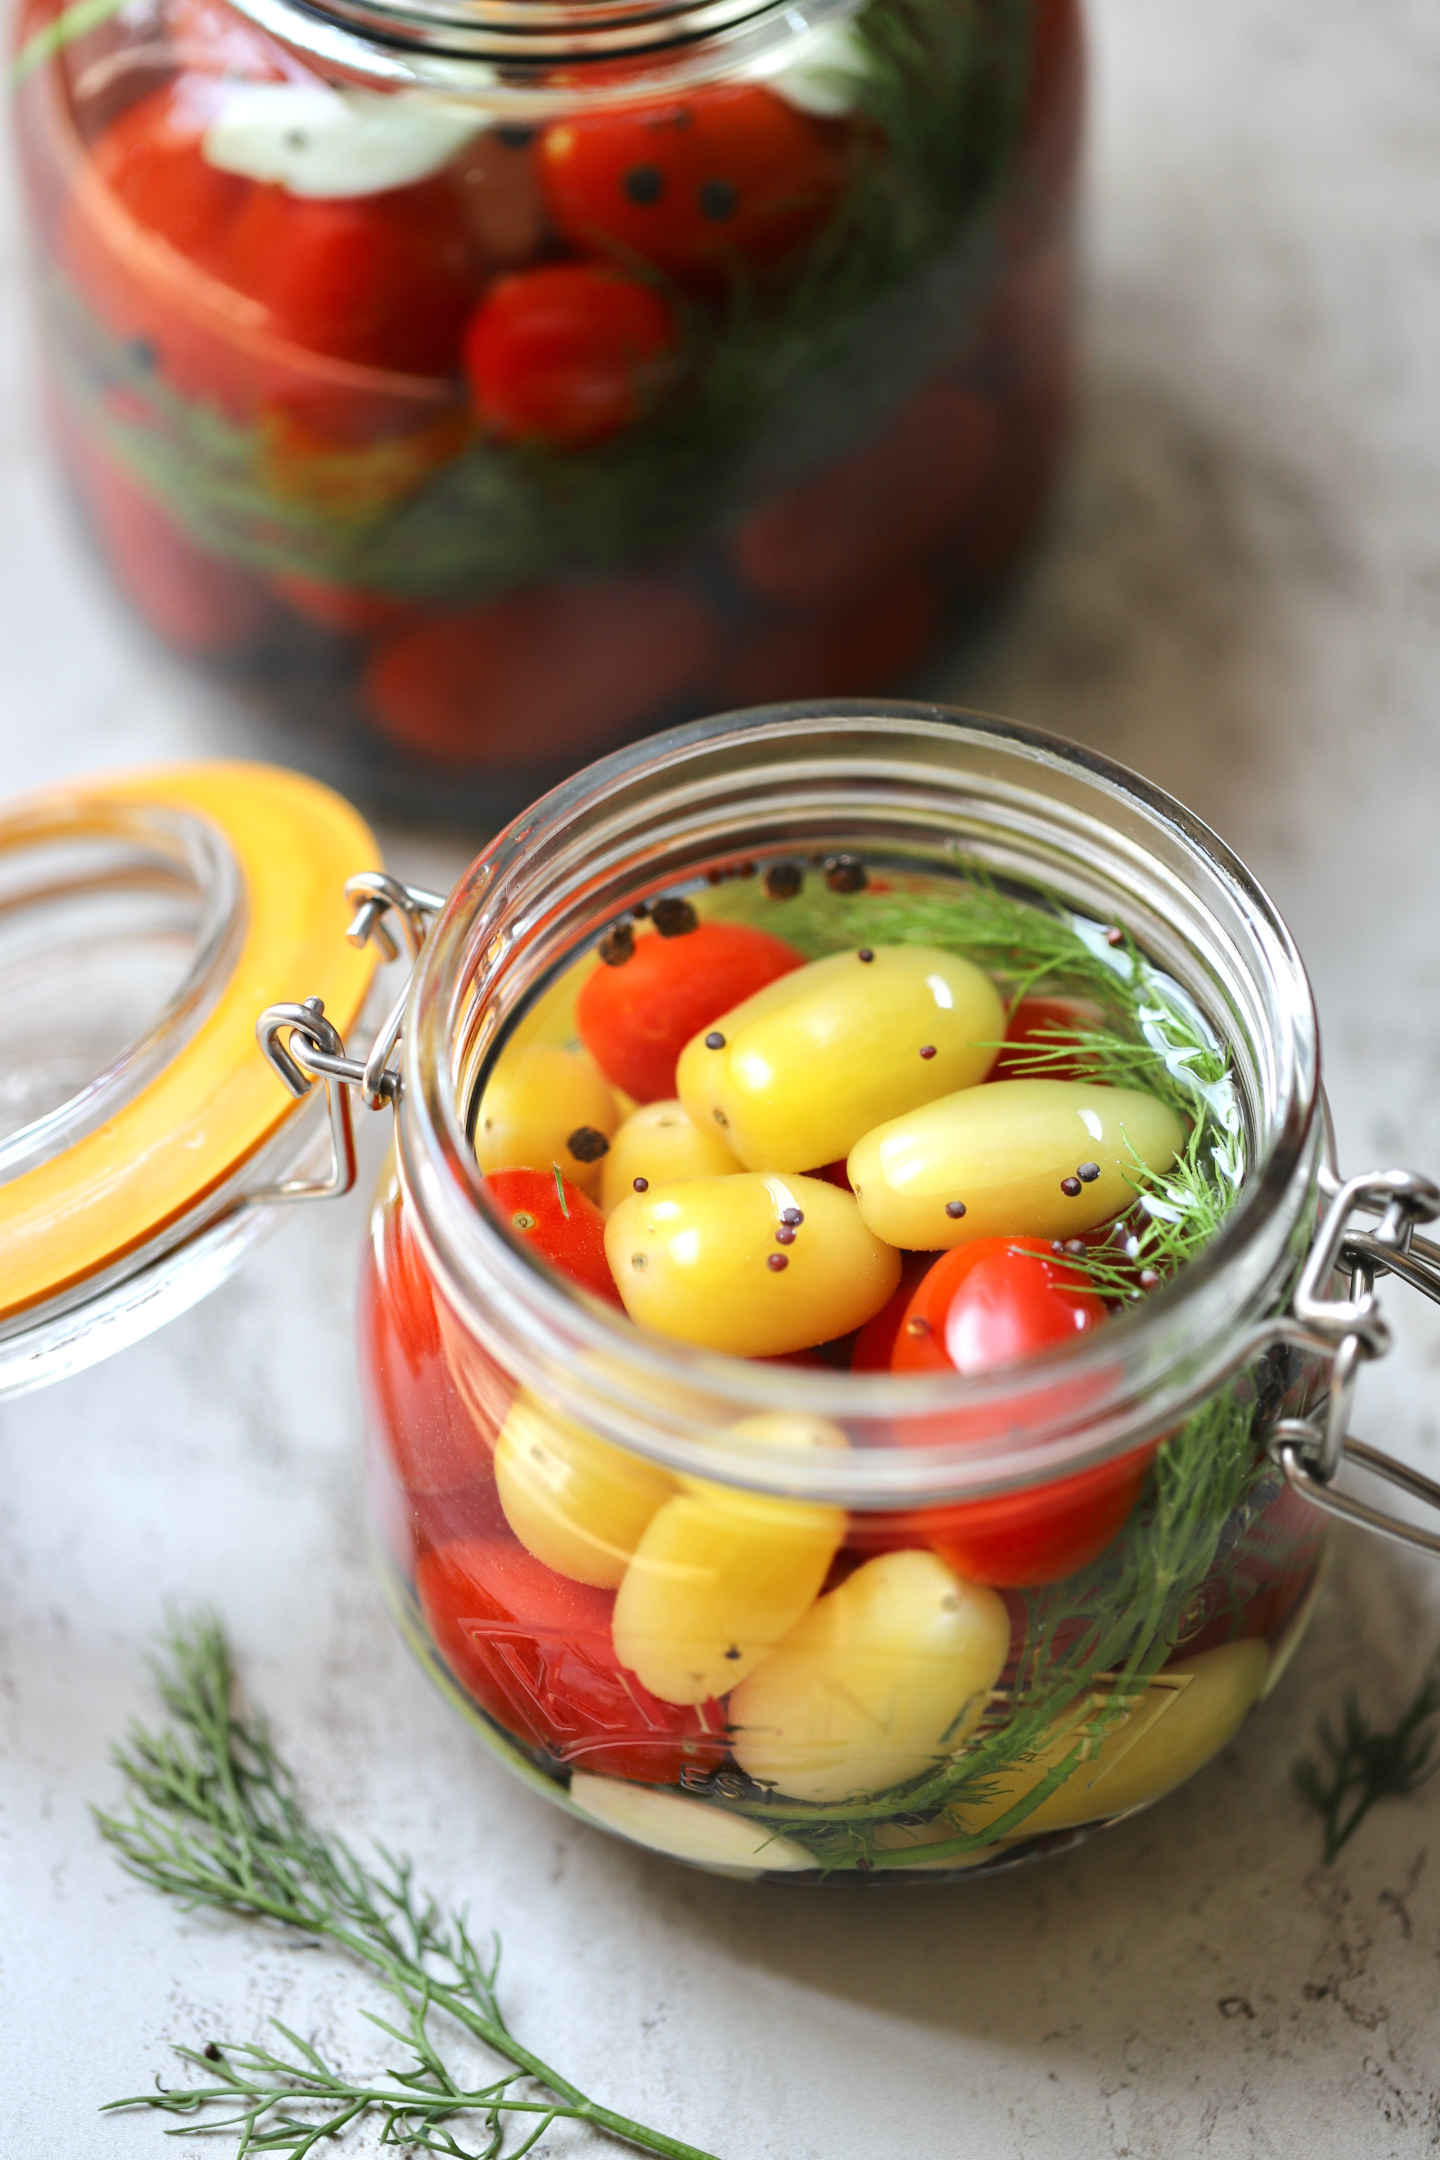 mixed red and yellow tomatoes in salt brine